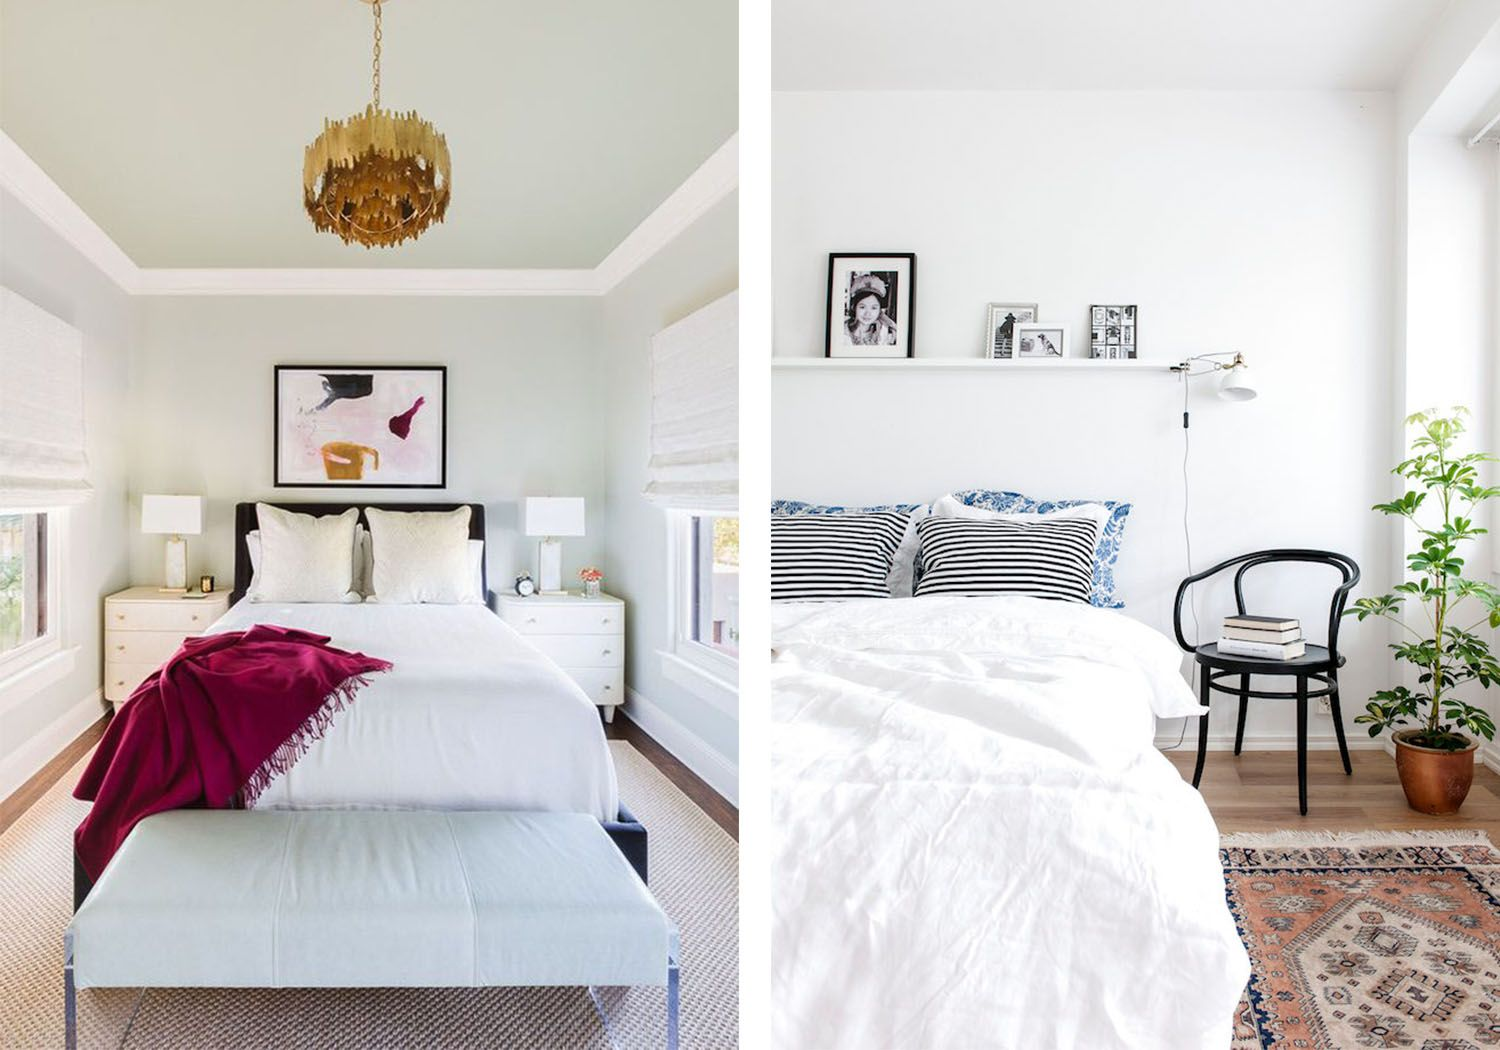 How to Maximize Space in a Small Bedroom Small bedroom